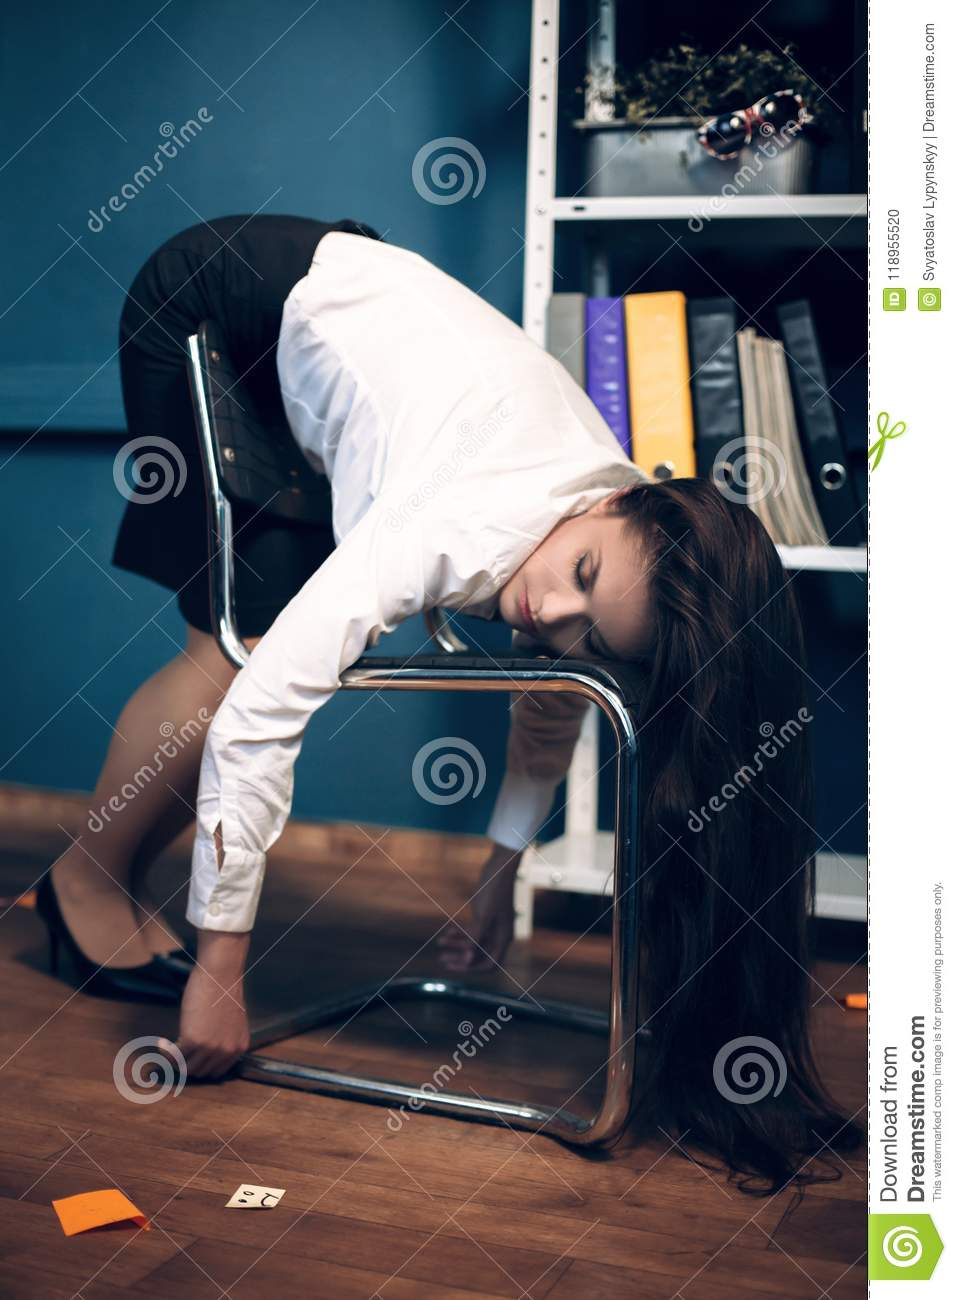 chairs for sleeping volmar swivel chair review lady on in weird pose stock photo image of young